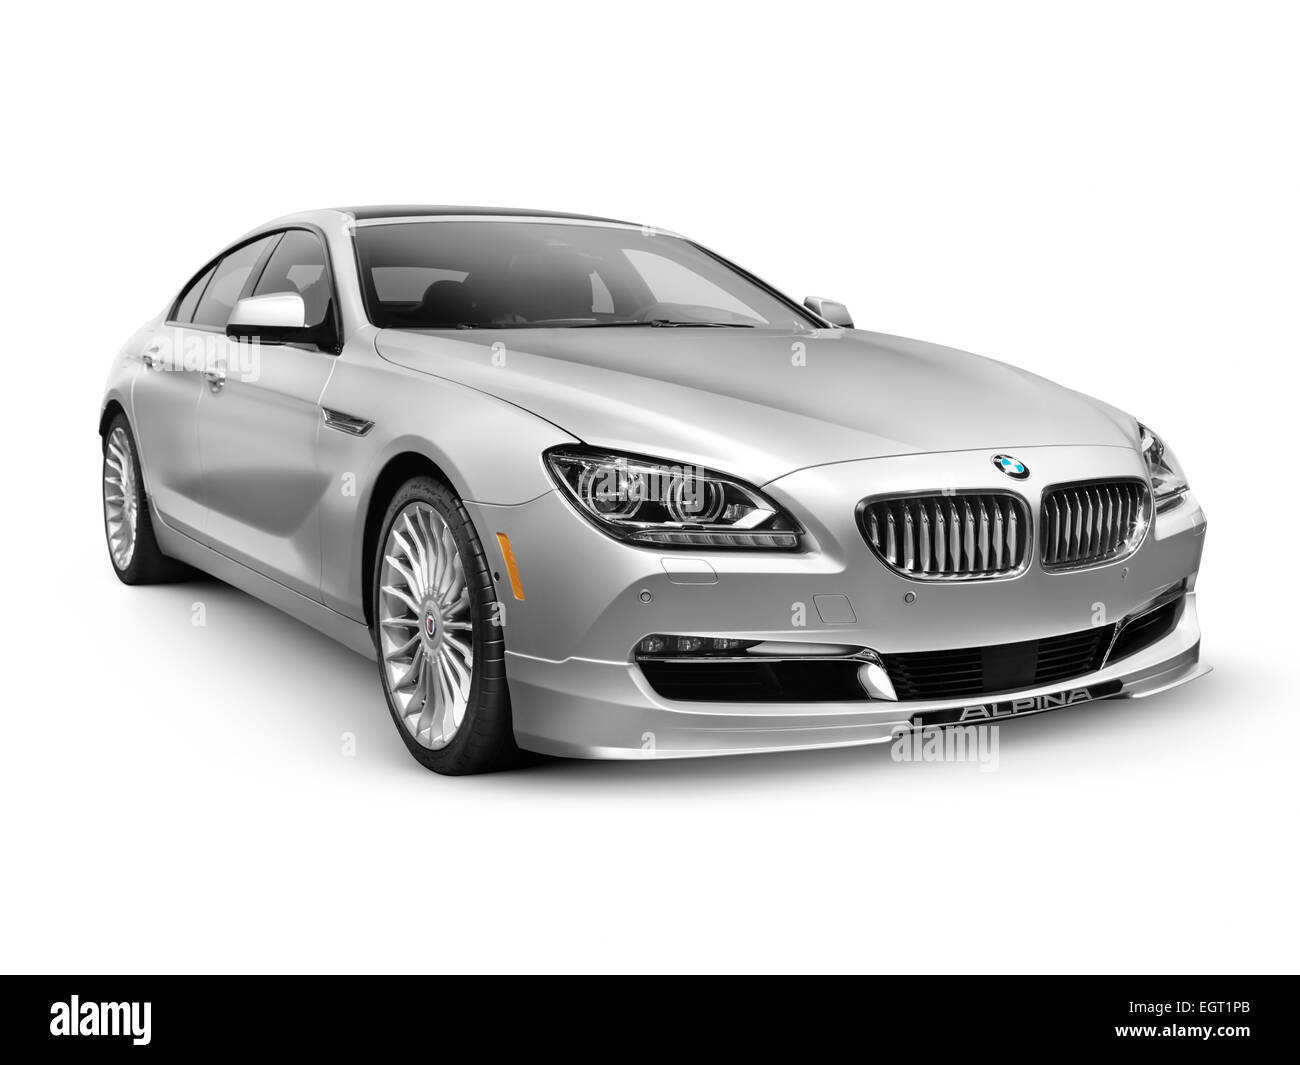 Silver 2015 Bmw Alpina B6 Gran Coupe Luxury Car Isolated On White